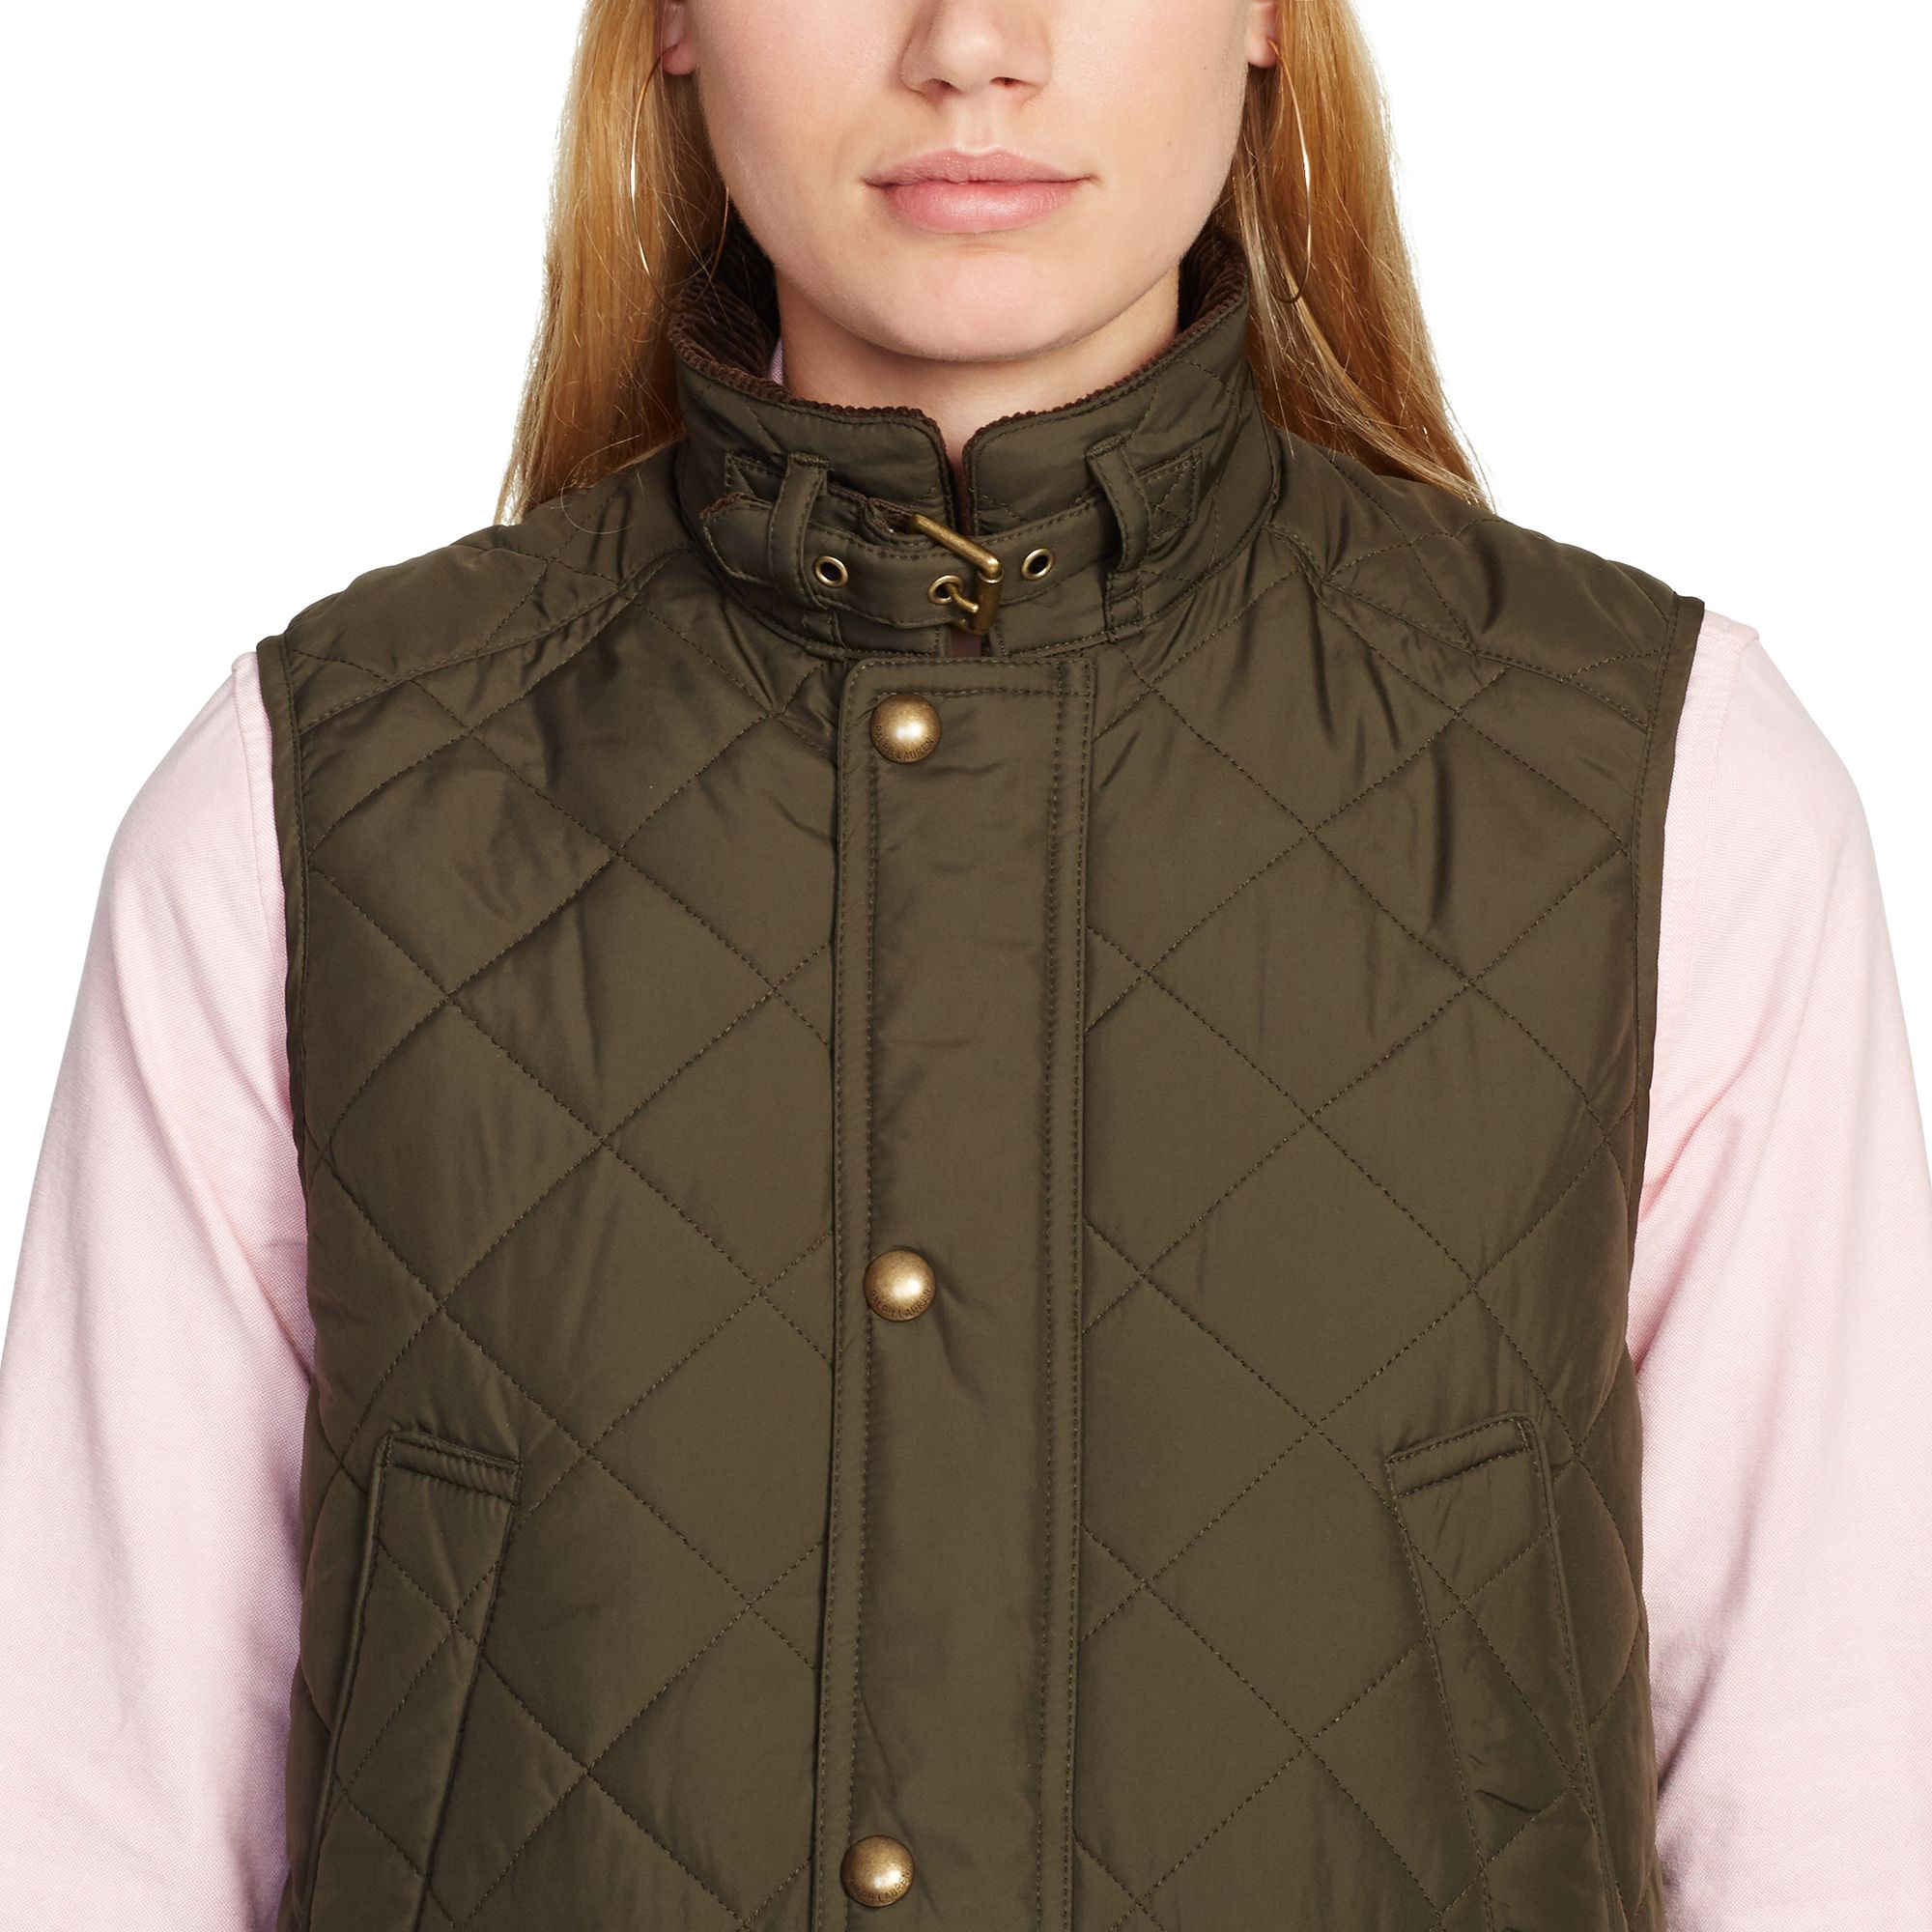 discounted asp sale quilted vest barbour quilt women s womens sell